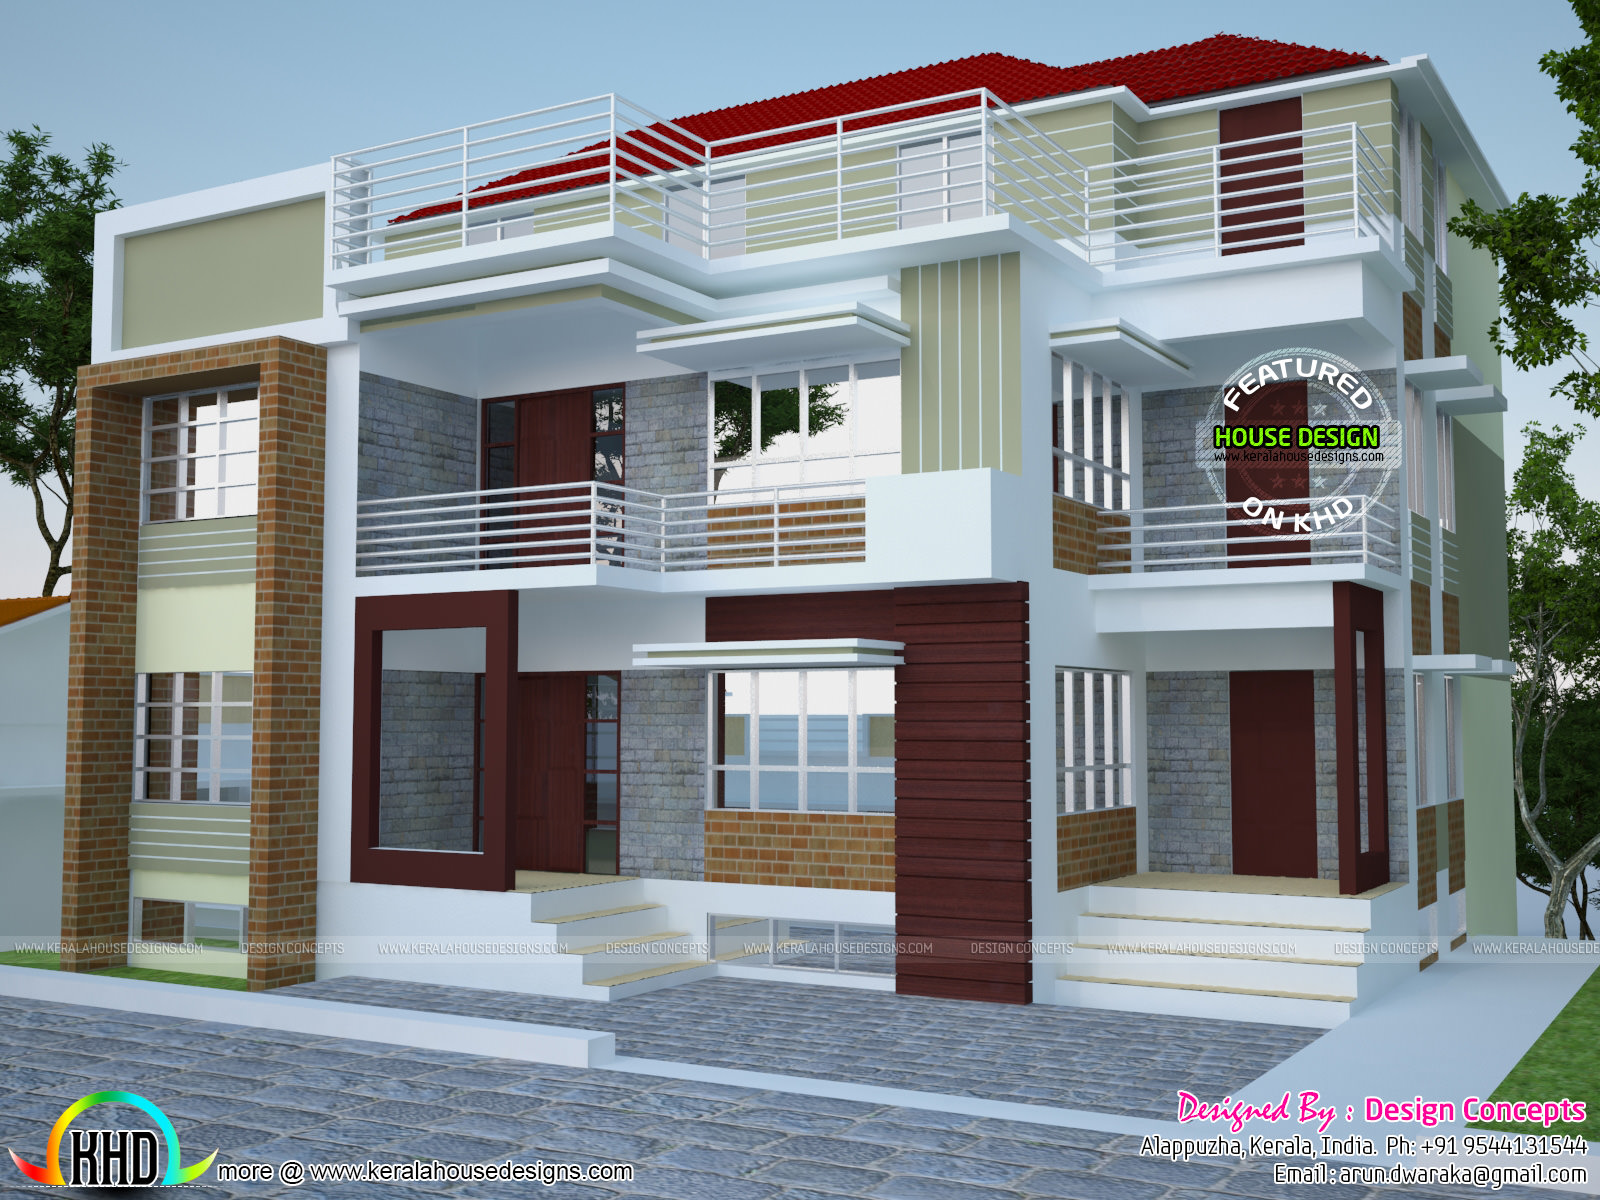 Multi family 4 plex home plan kerala home design and for Home designers in my area